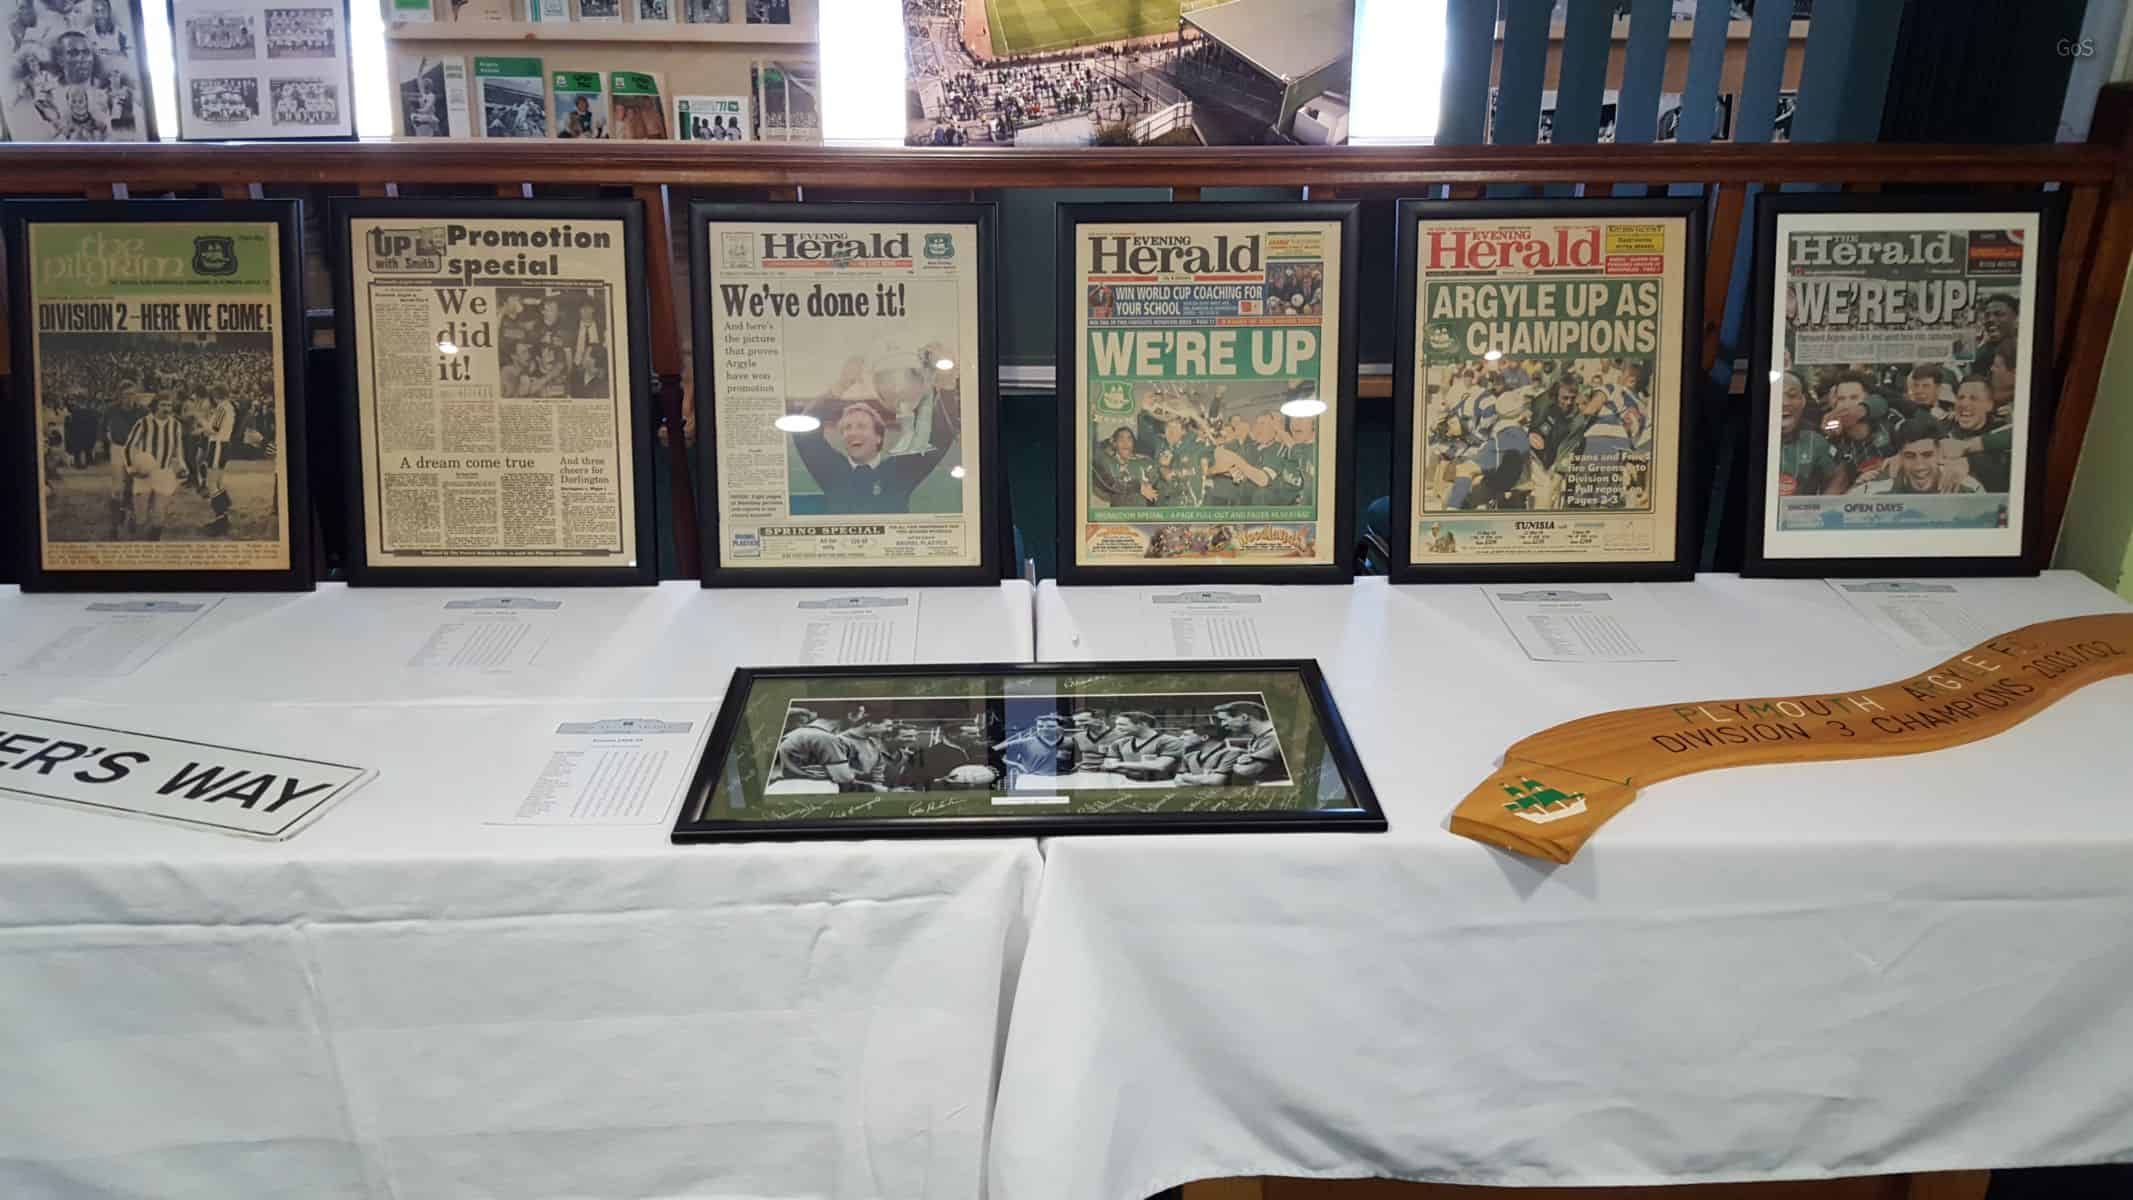 Promotions from 1974-75 to 2016-17